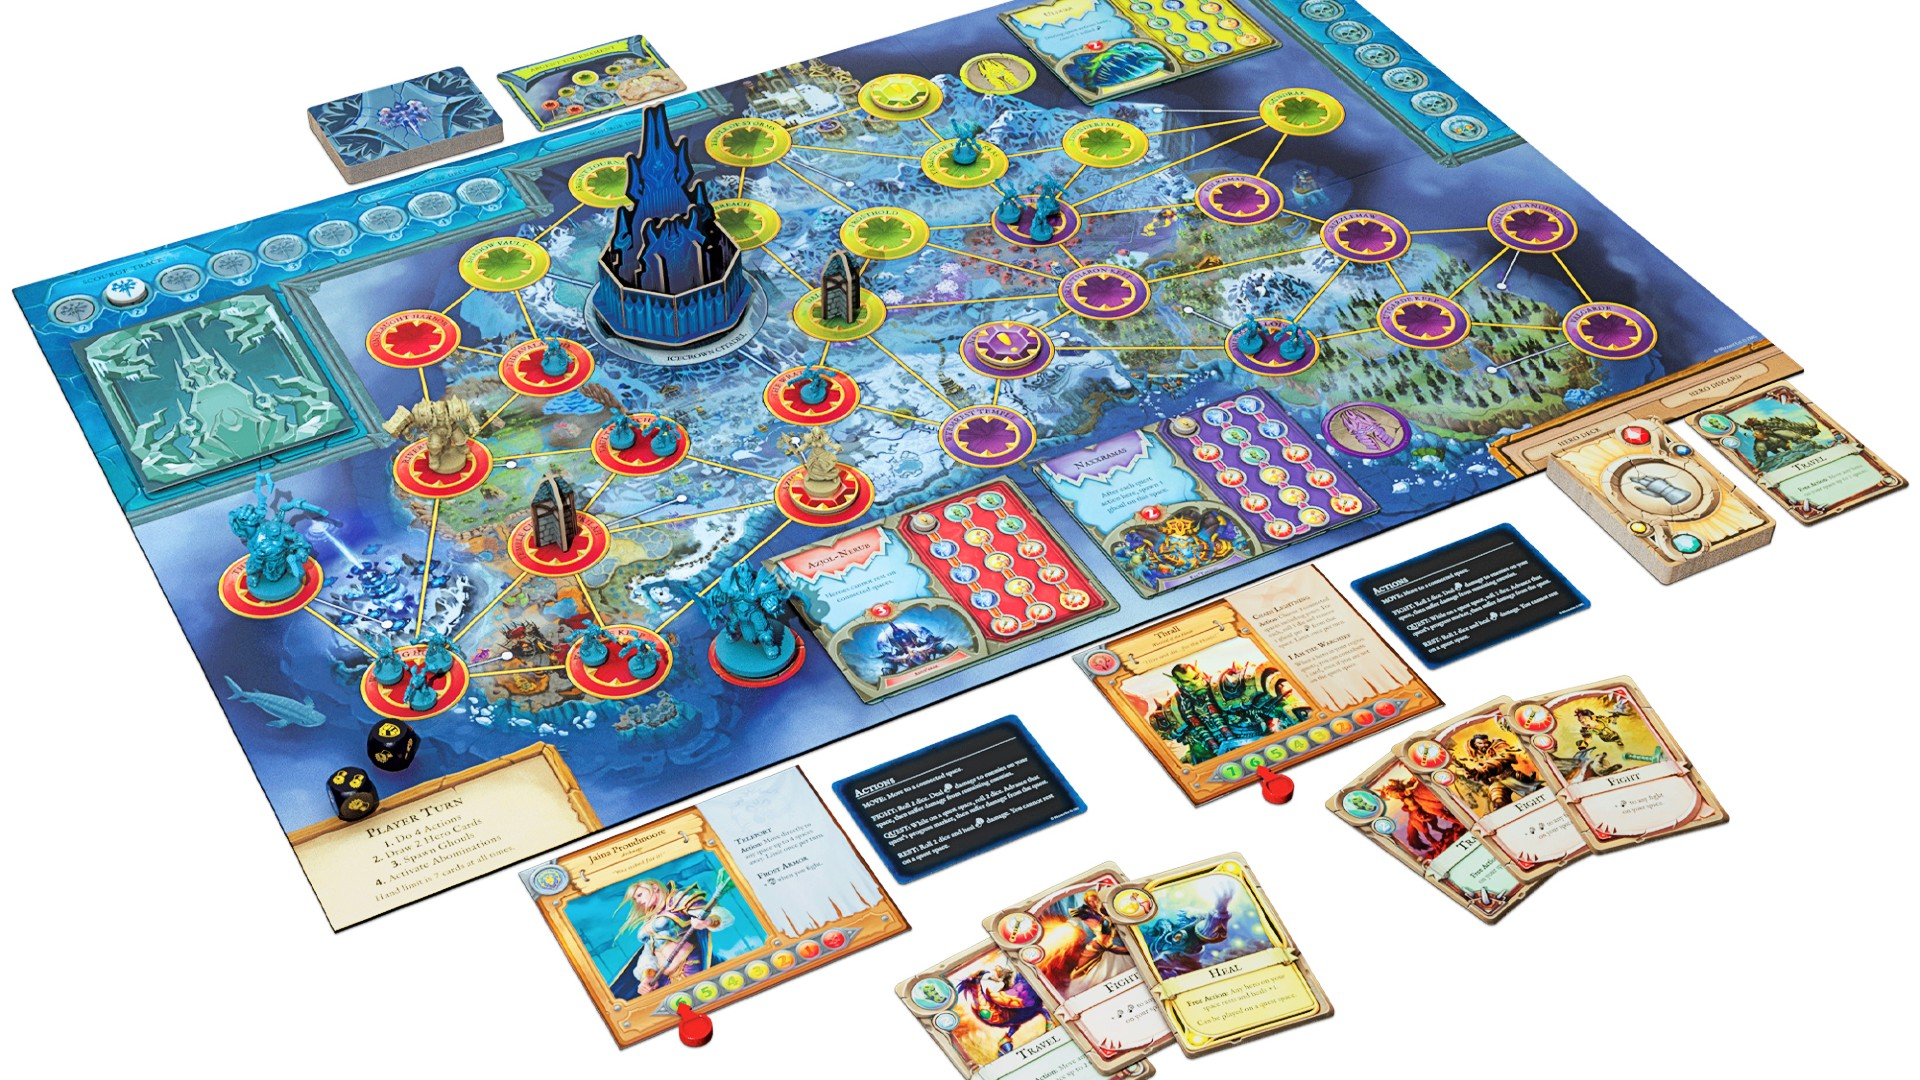 Here's how WoW's Pandemic board game works